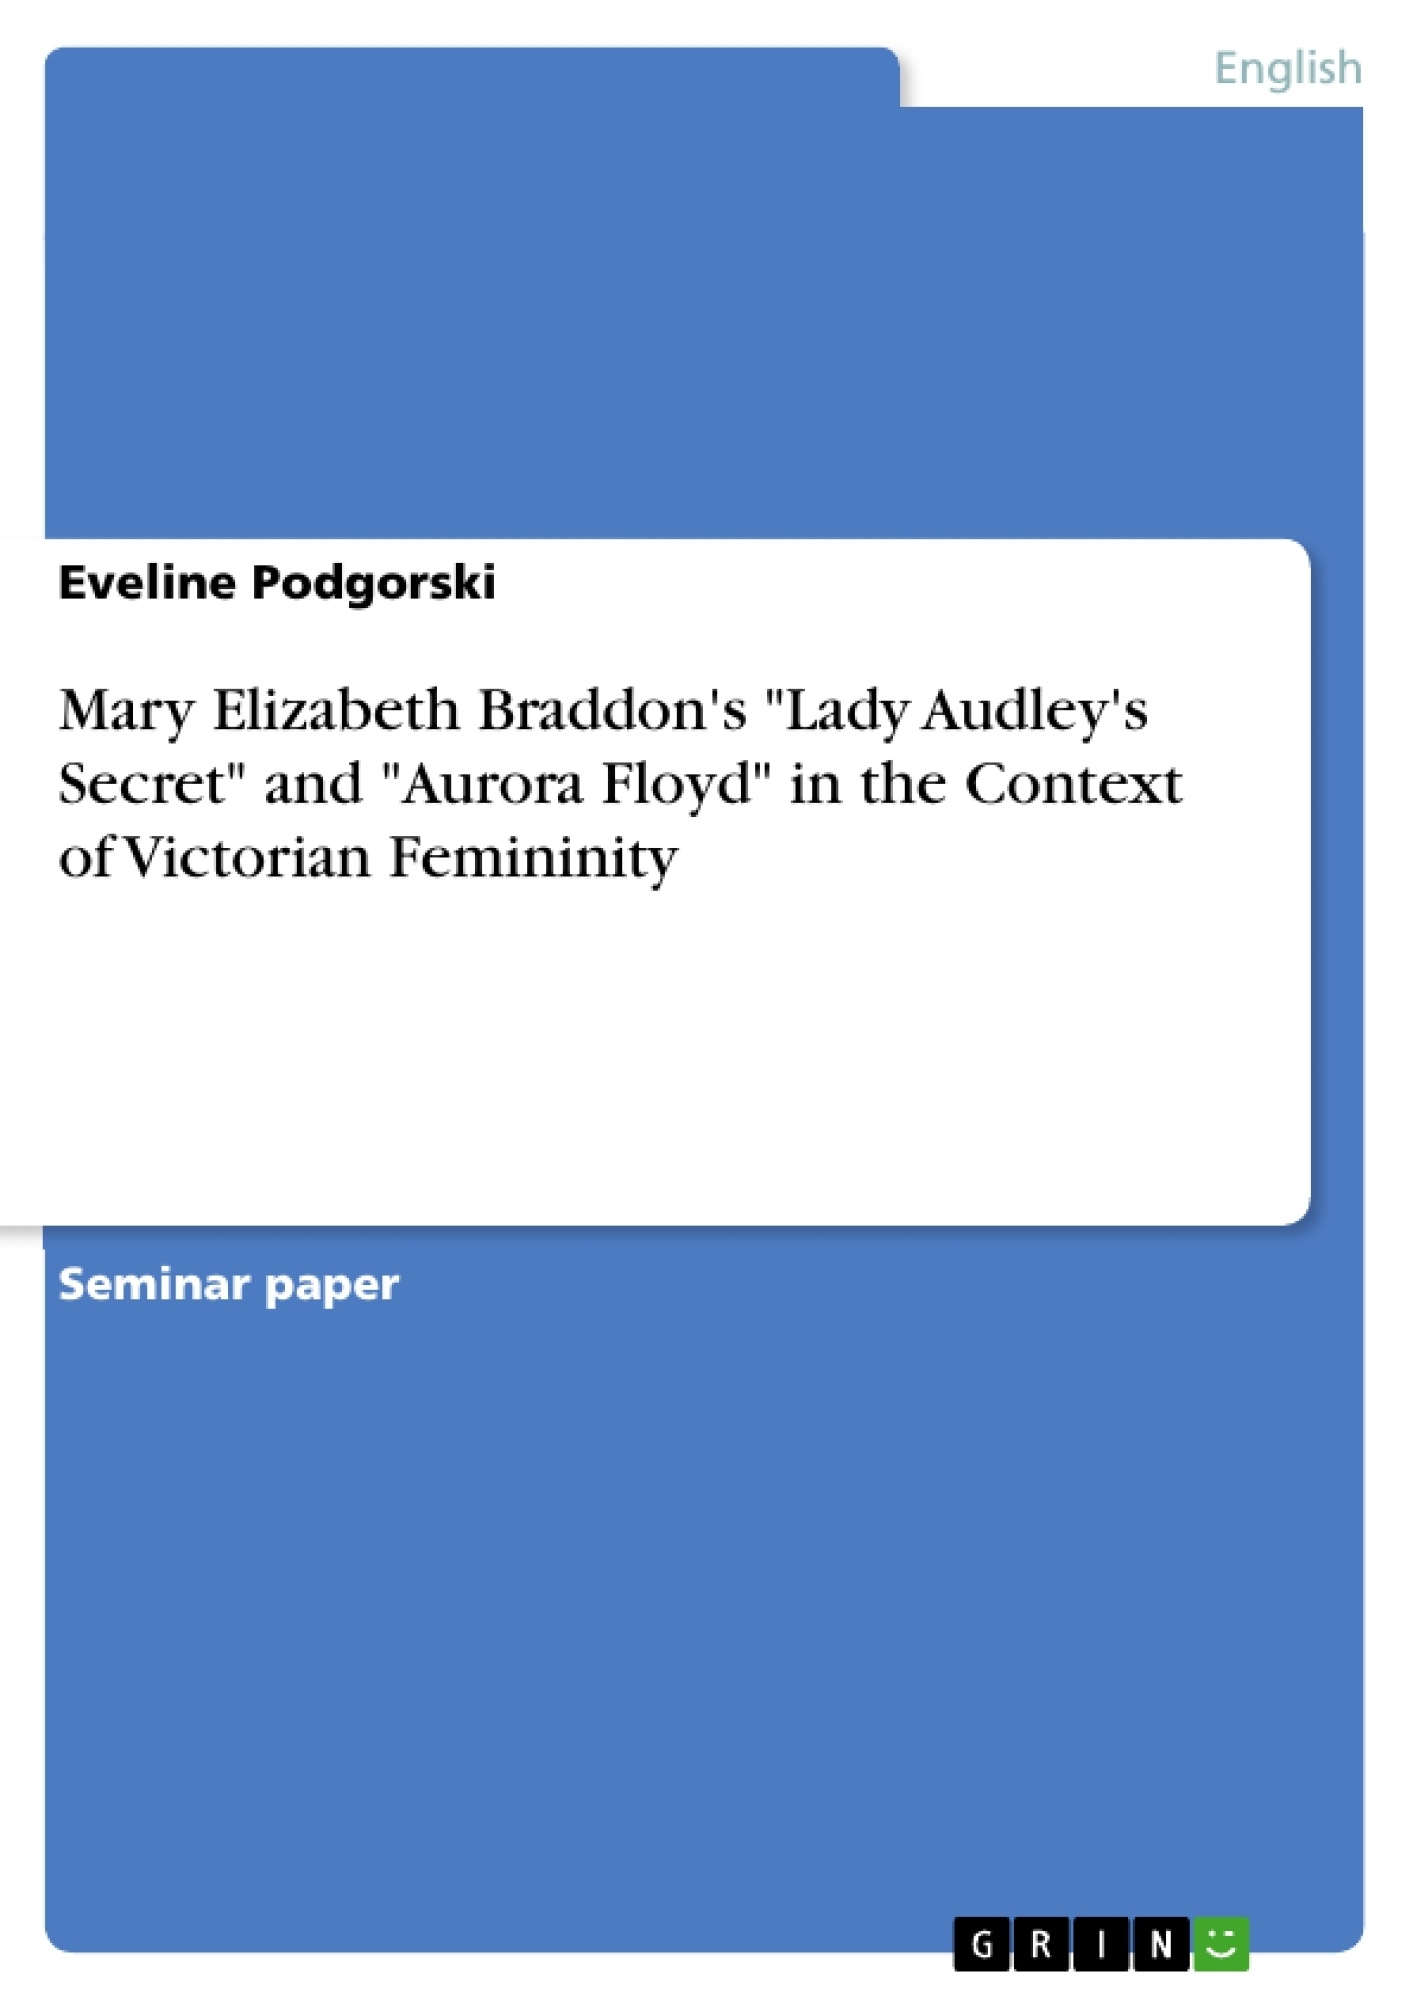 """Title: Mary Elizabeth Braddon's """"Lady Audley's Secret"""" and """"Aurora Floyd"""" in the Context of Victorian Femininity"""